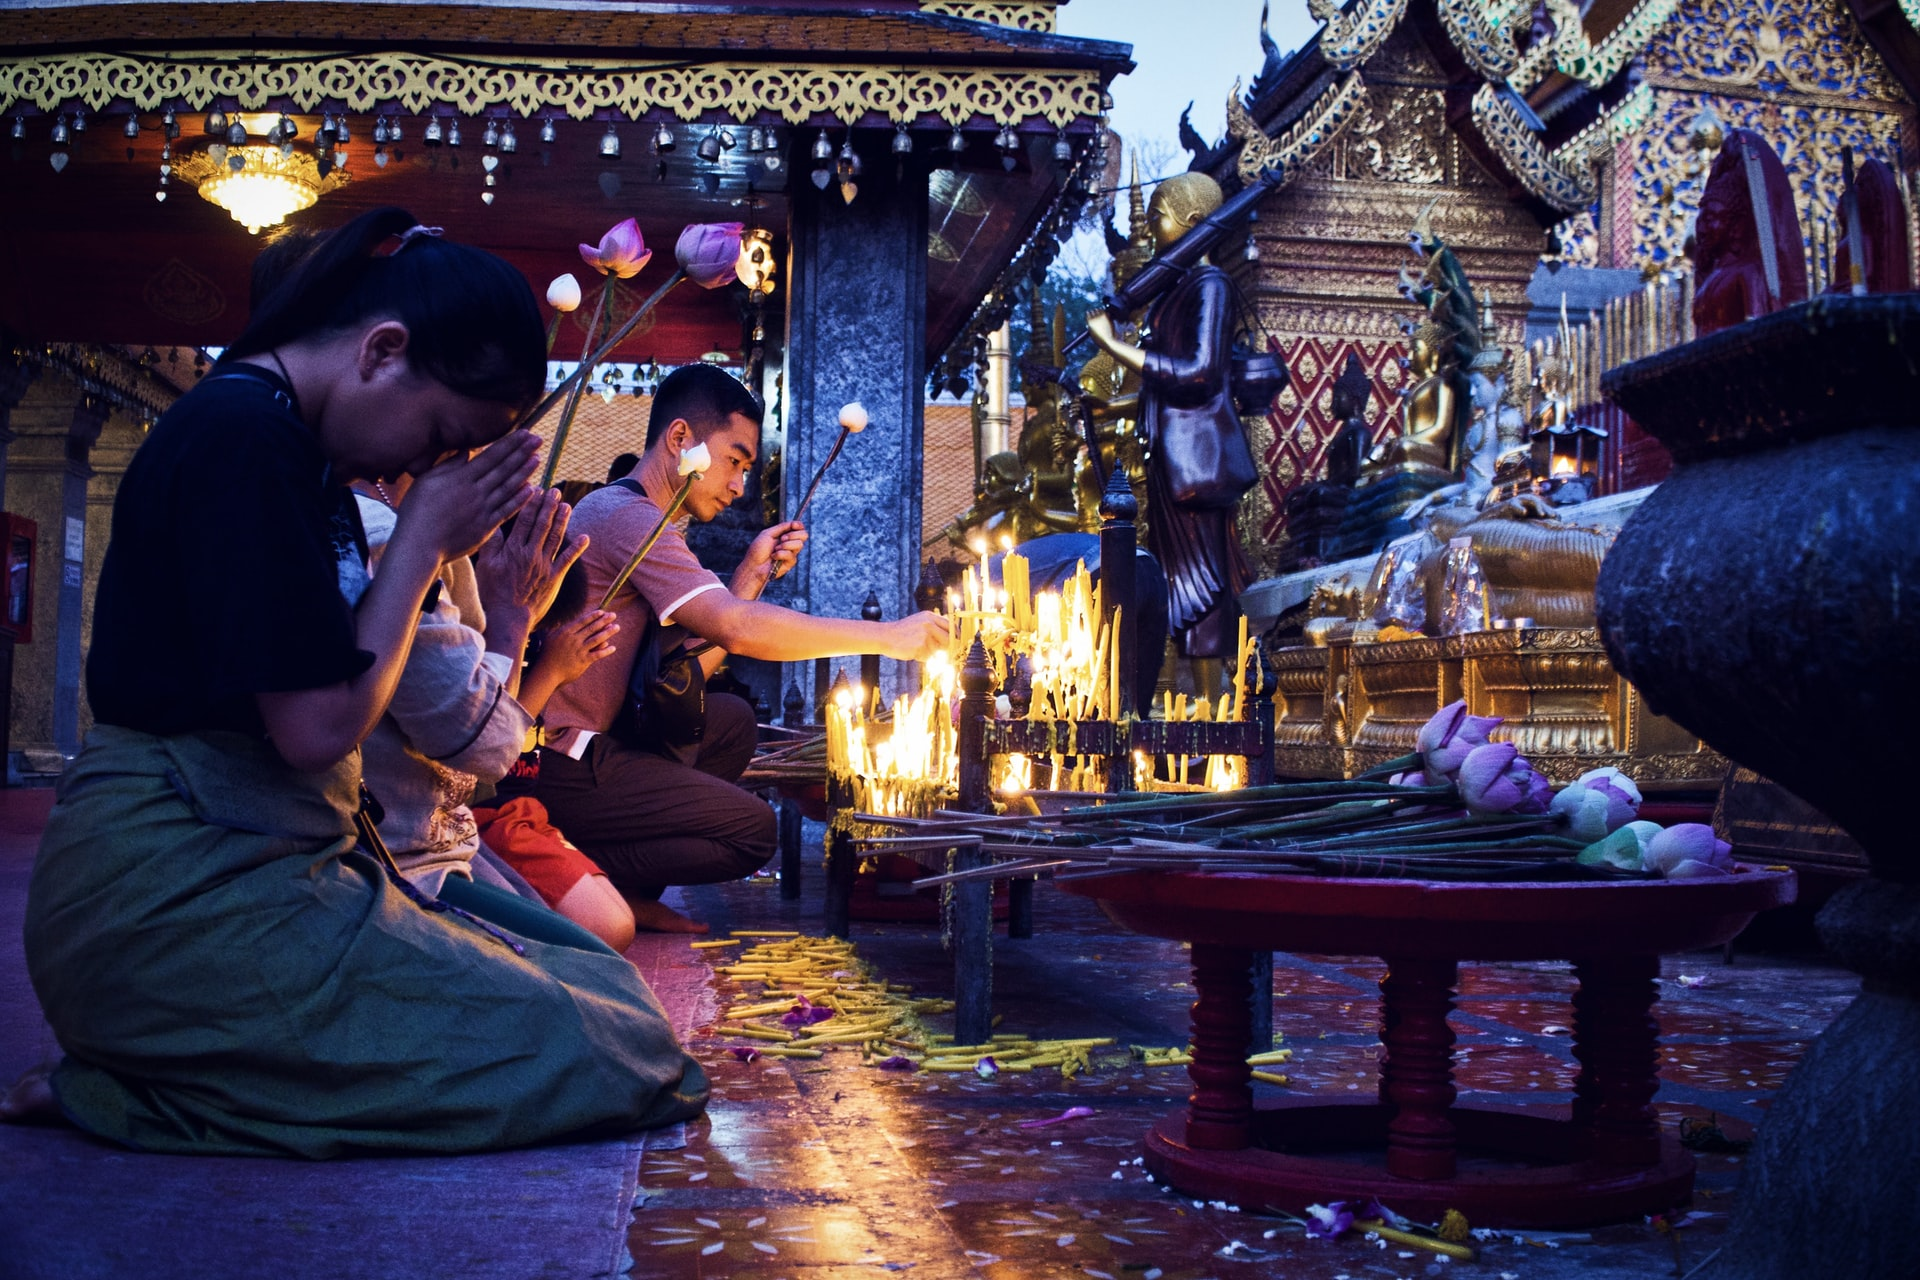 People paying their respects at a Buddhist temple in Chiang Mai, Thailand